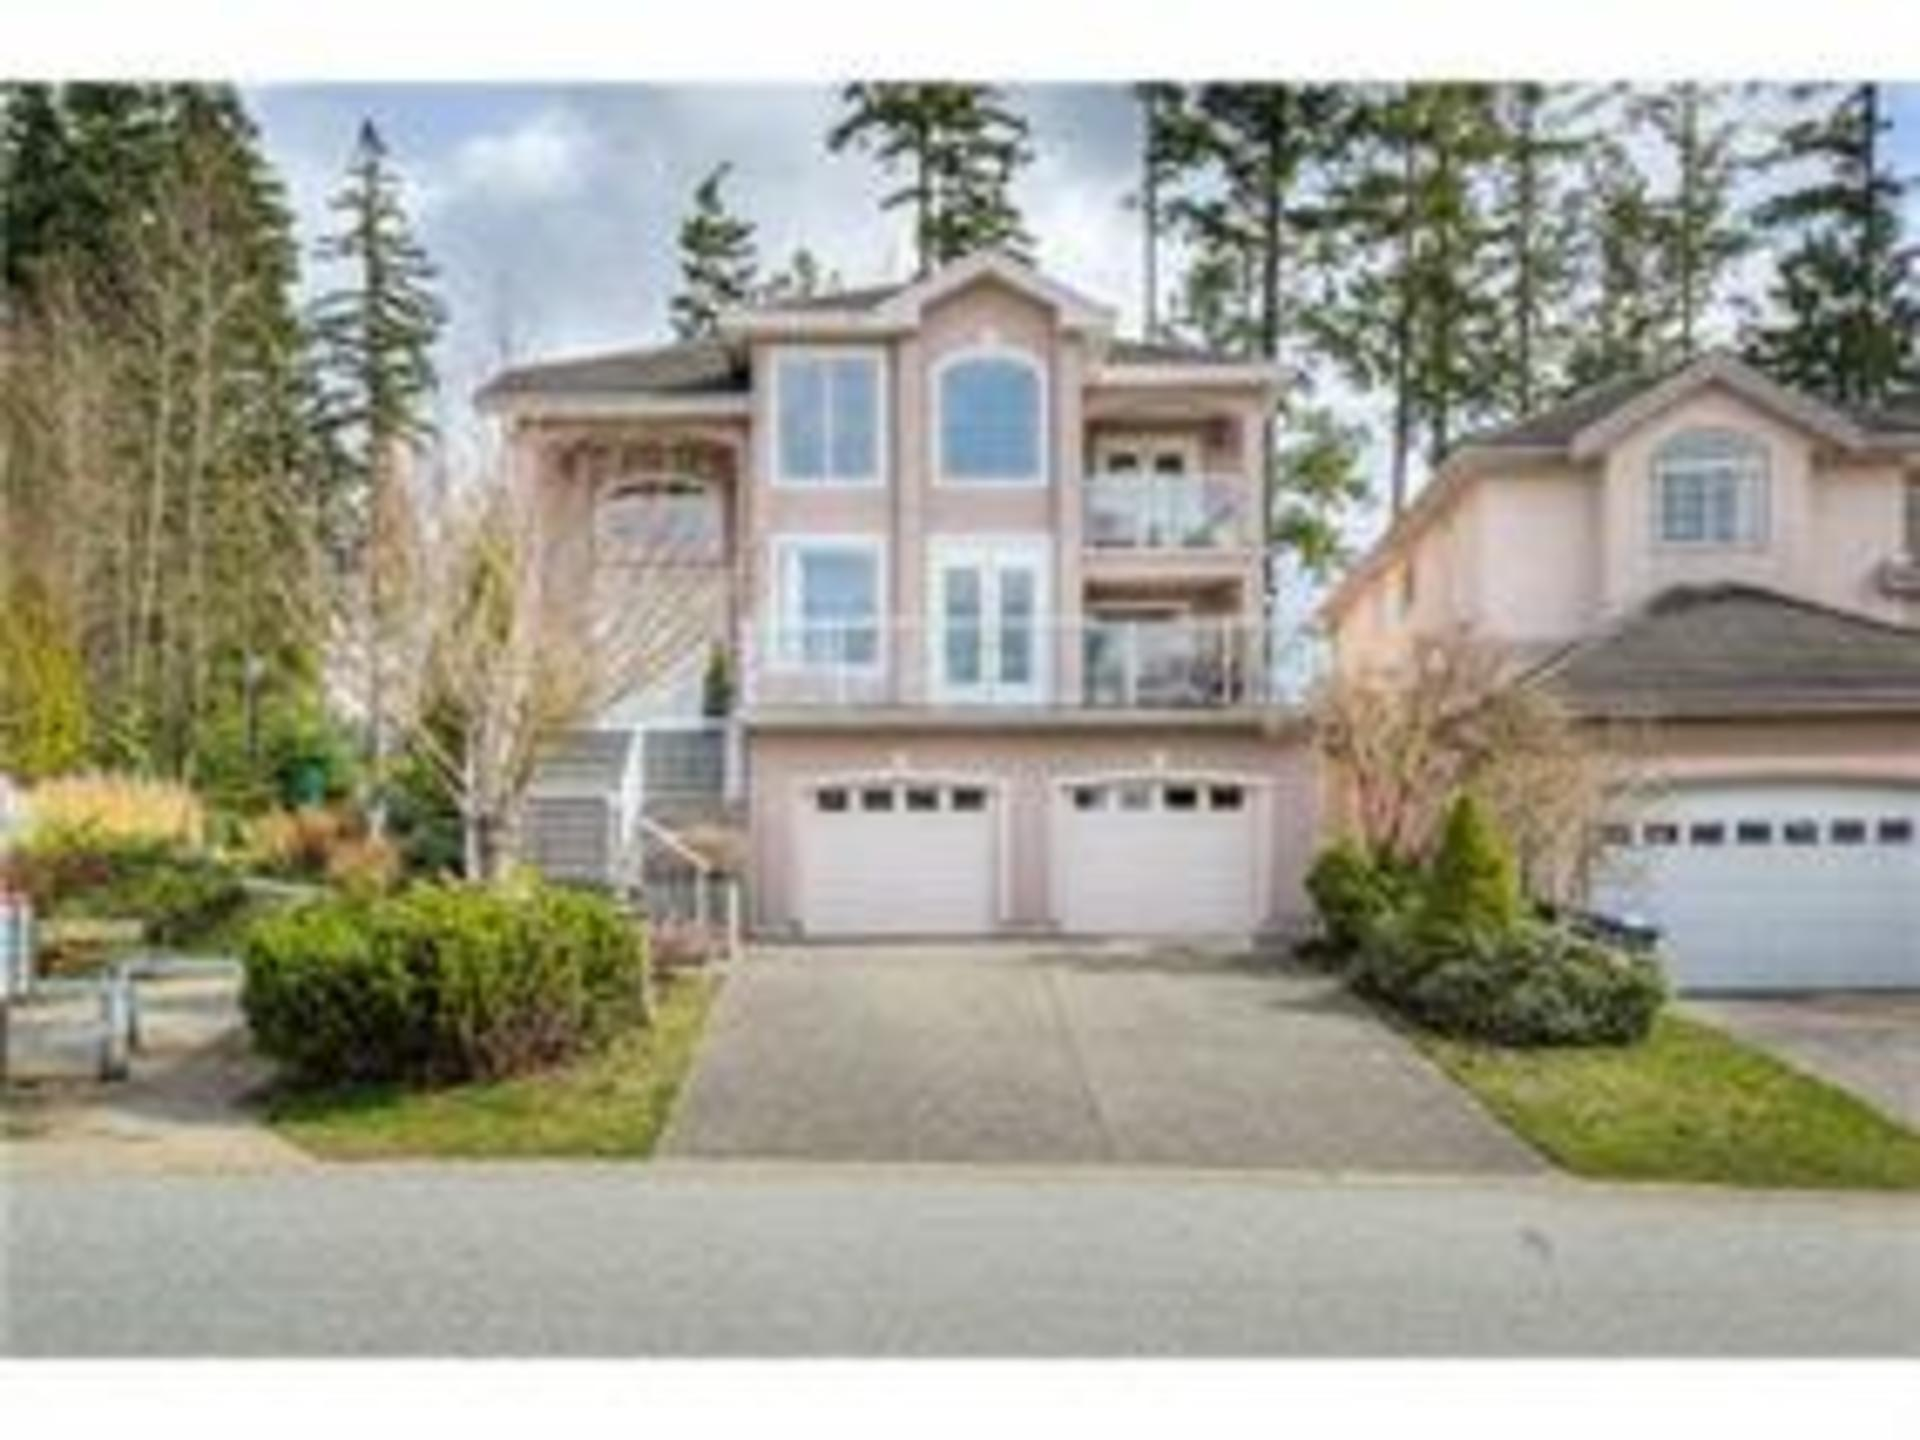 260885117 at 20 Hett, Heritage Mountain, Port Moody